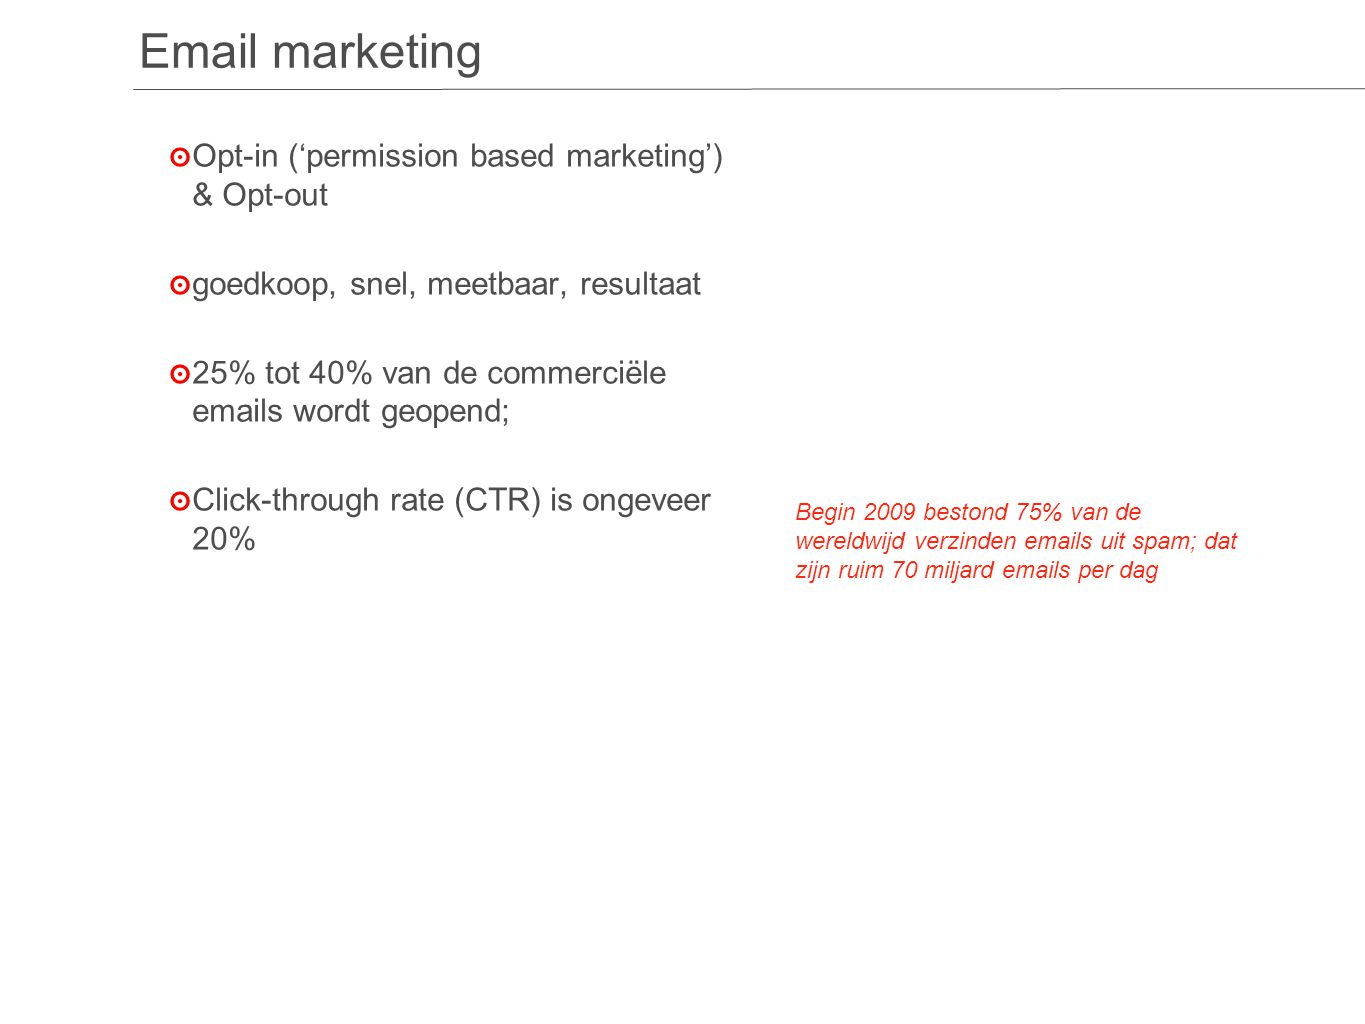 ๏O๏O pt-in ('permission based marketing') & Opt-out ๏g๏g oedkoop, snel, meetbaar, resultaat ๏2๏2 5% tot 40% van de commerciële emails wordt geopend; ๏